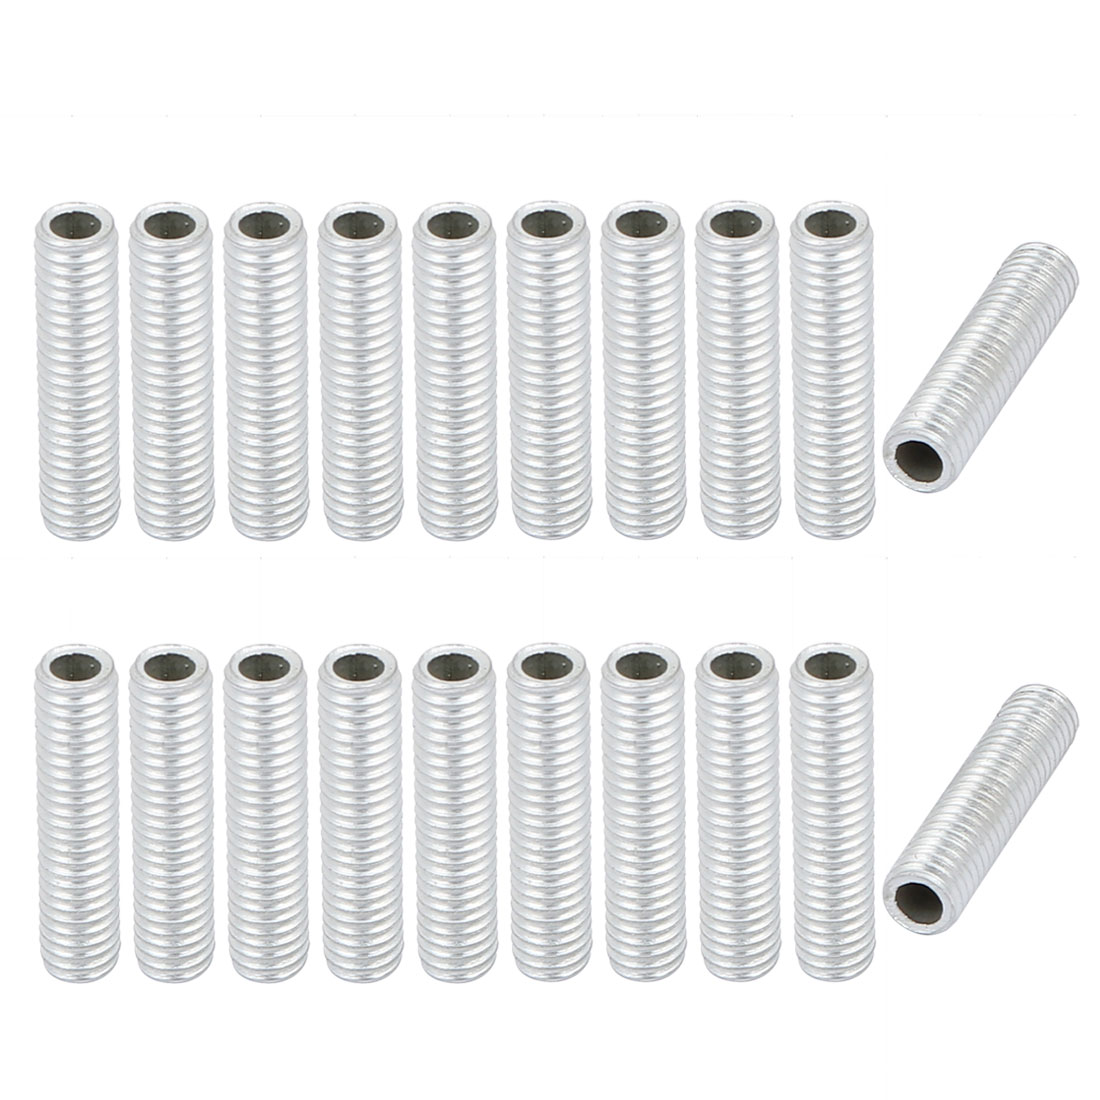 20Pcs M6 1mm Pitch Threaded Zinc Plated Pipe Nipple Lamp Parts 25mm Long